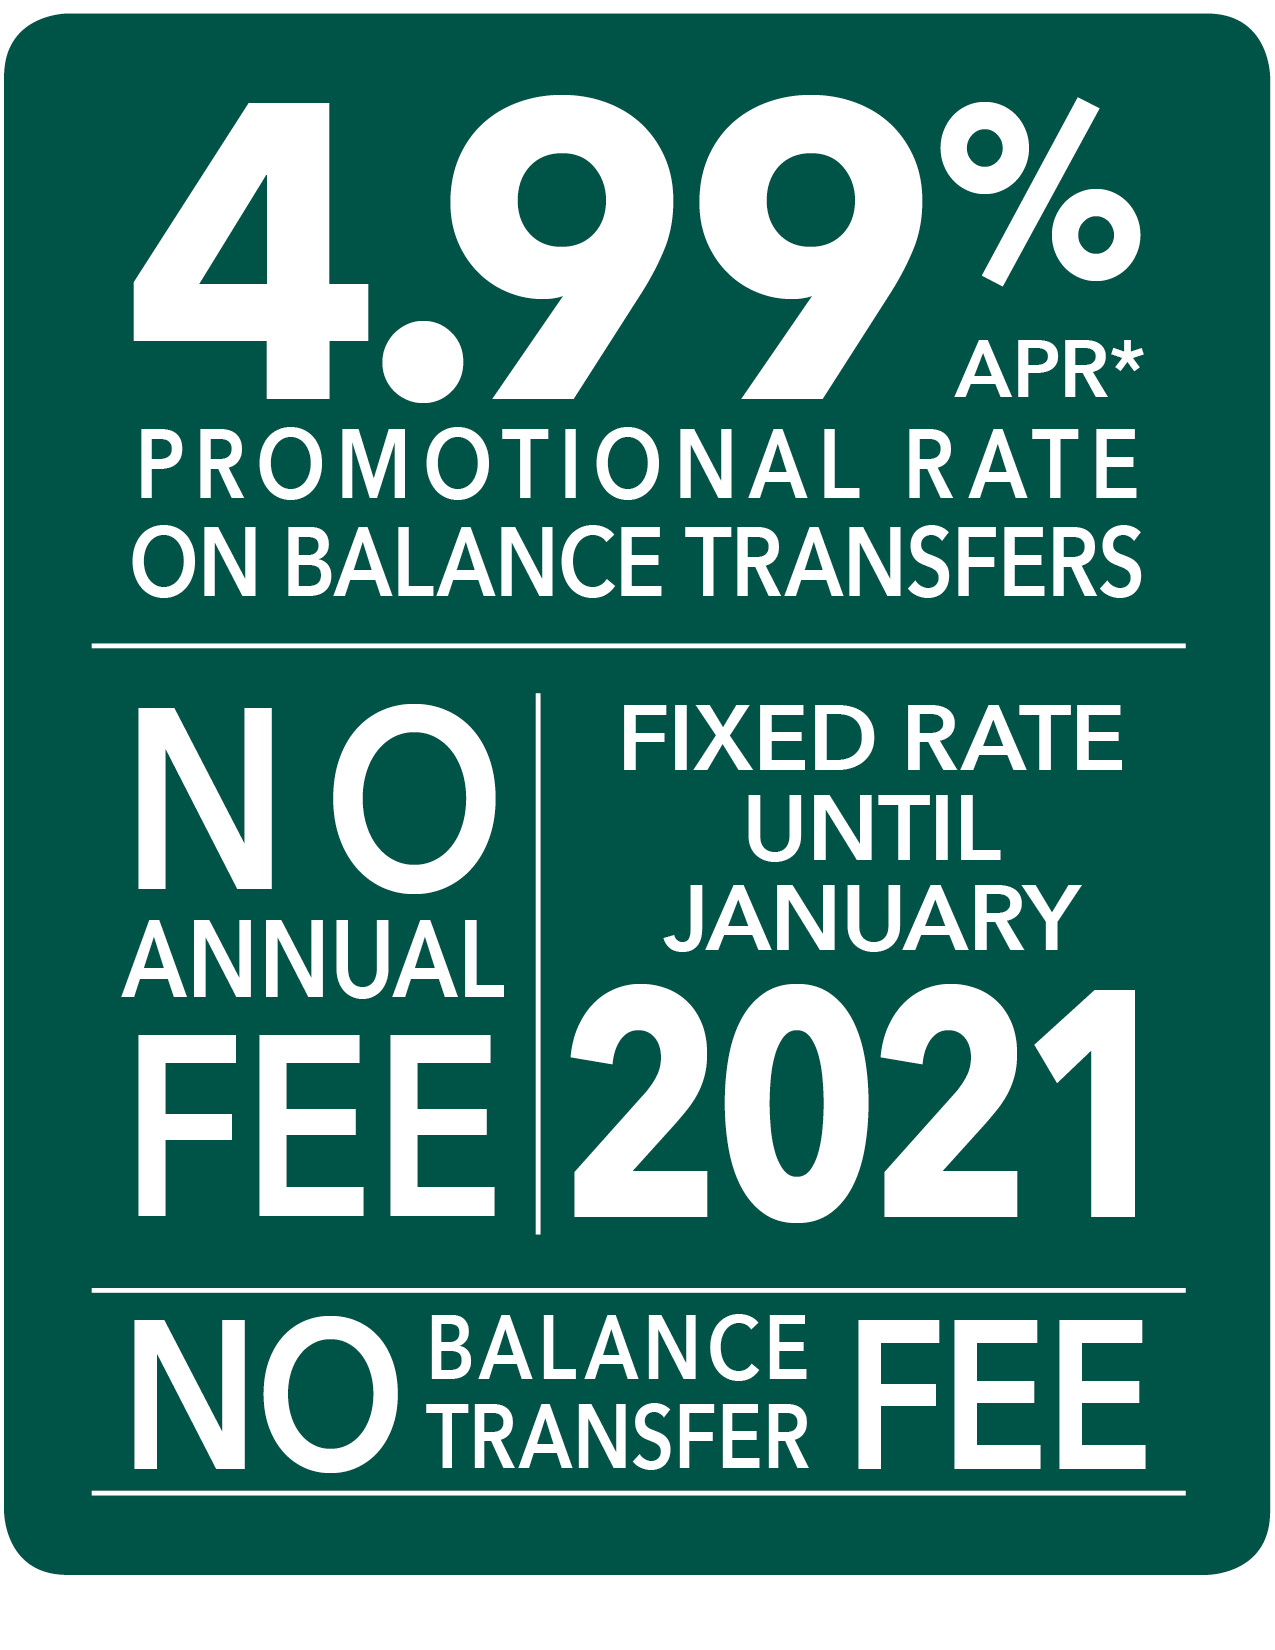 4.99% APR green with white letters graphic for balance transfer promotion